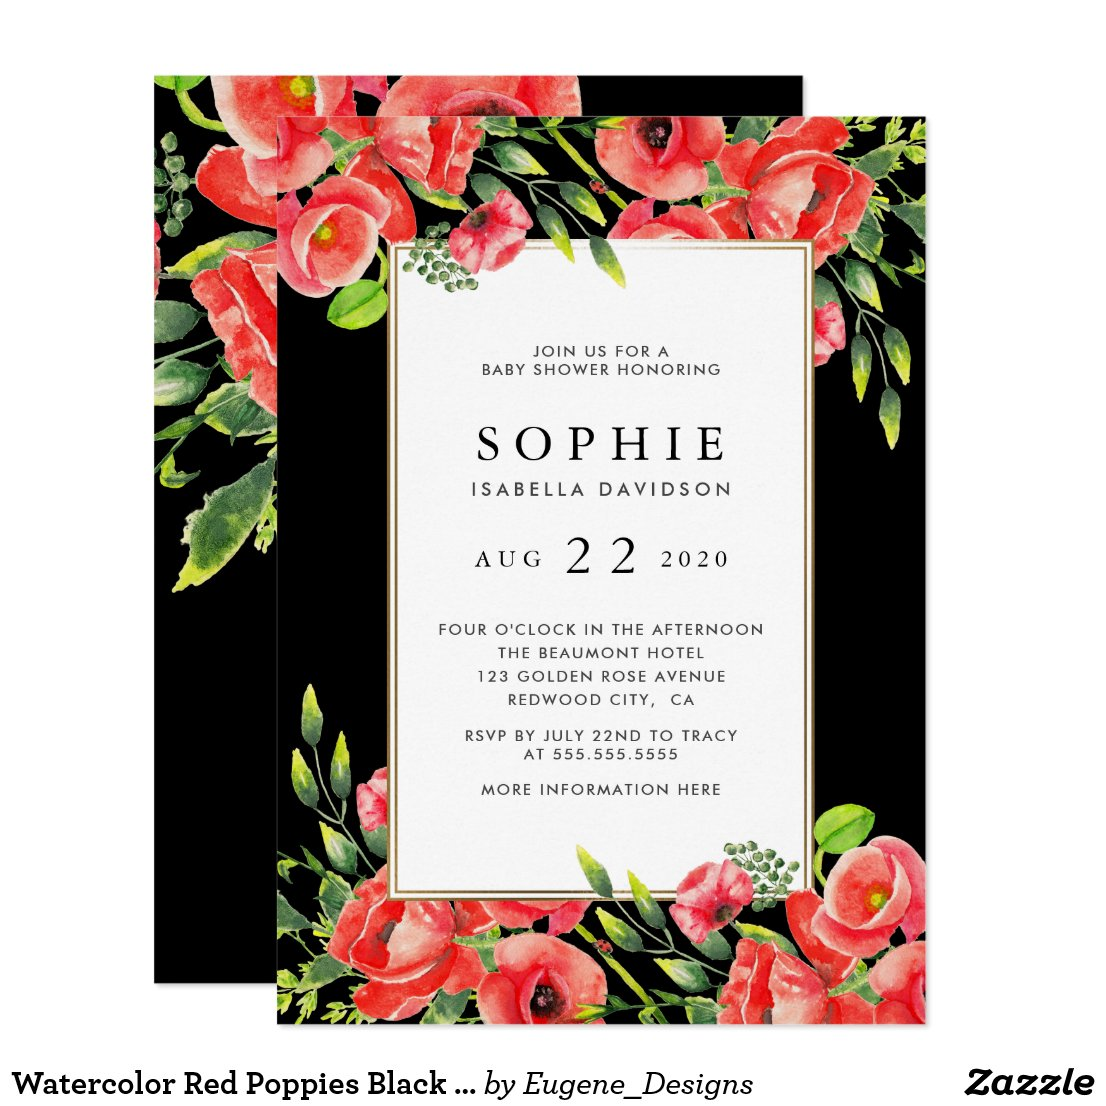 Watercolor Red Poppies Black Floral Baby Shower Invitation